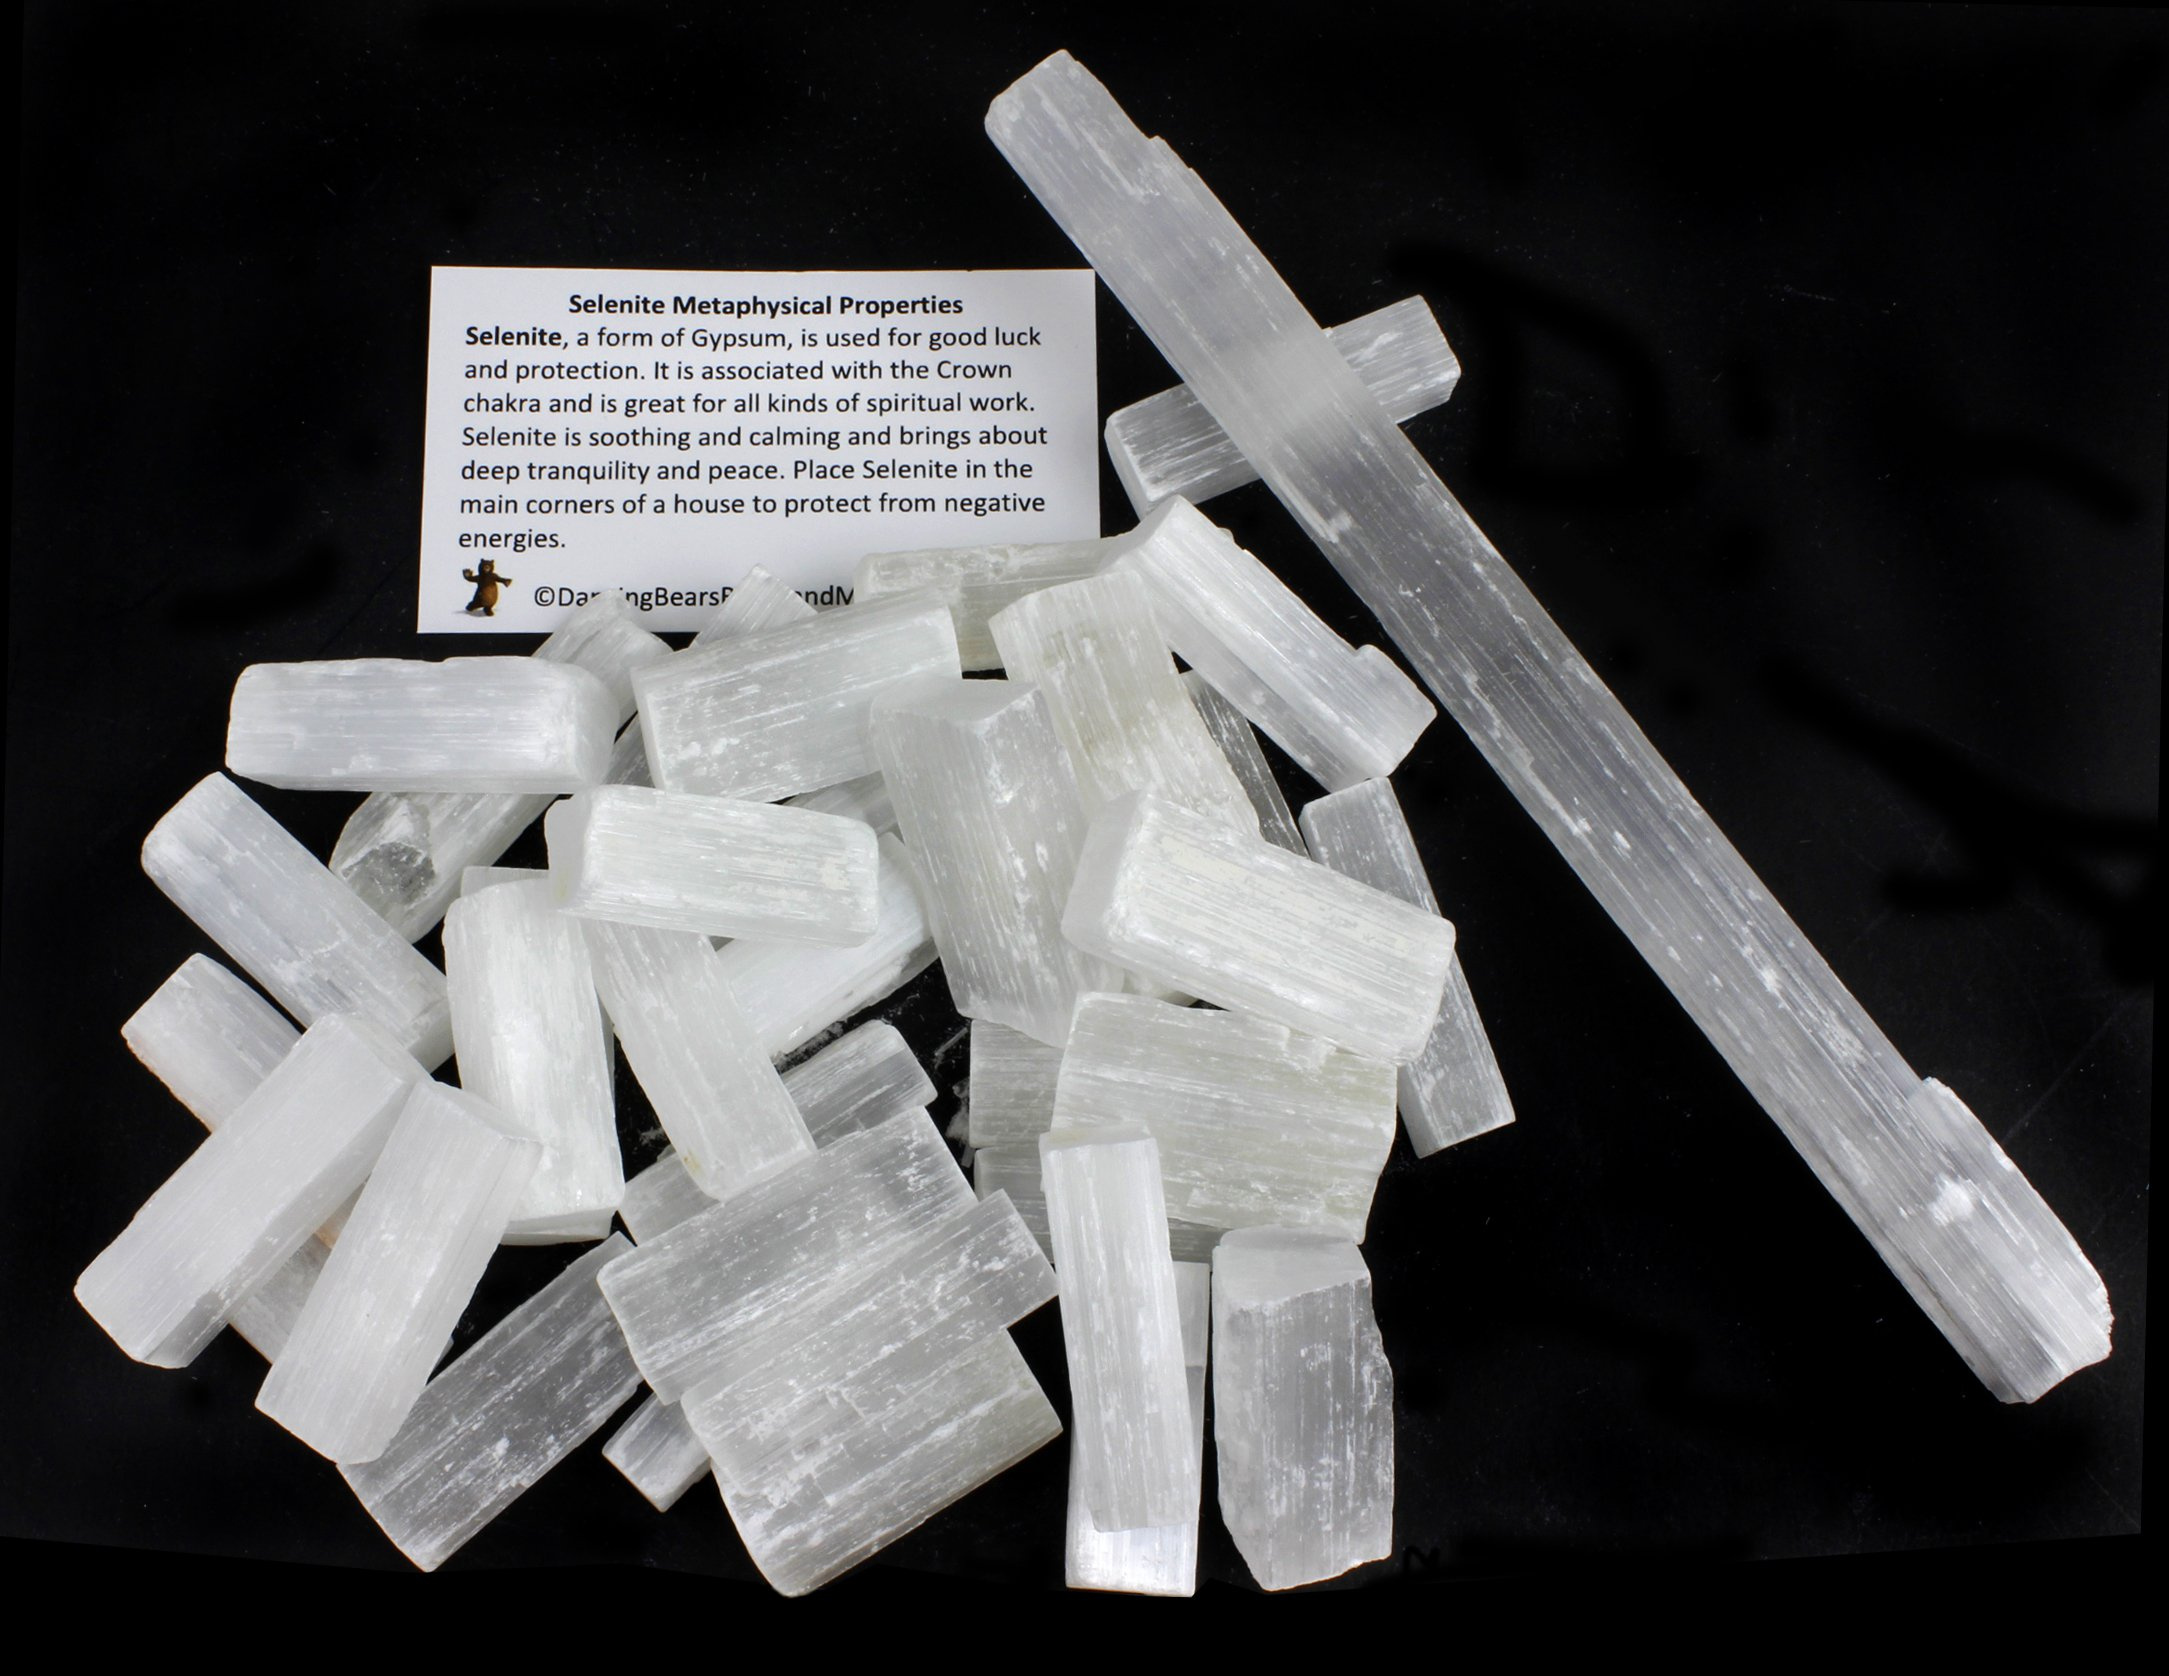 Dancing Bear Selenite Sticks bulk (35-40 pcs) 1.5 inch L X .25-.5'' W each, BONUS: (1) 8 inch Selenite Wand & Educational ID Card, Reiki, Chakra, Healing, Protection, Good Luck, Positive Energy, brand